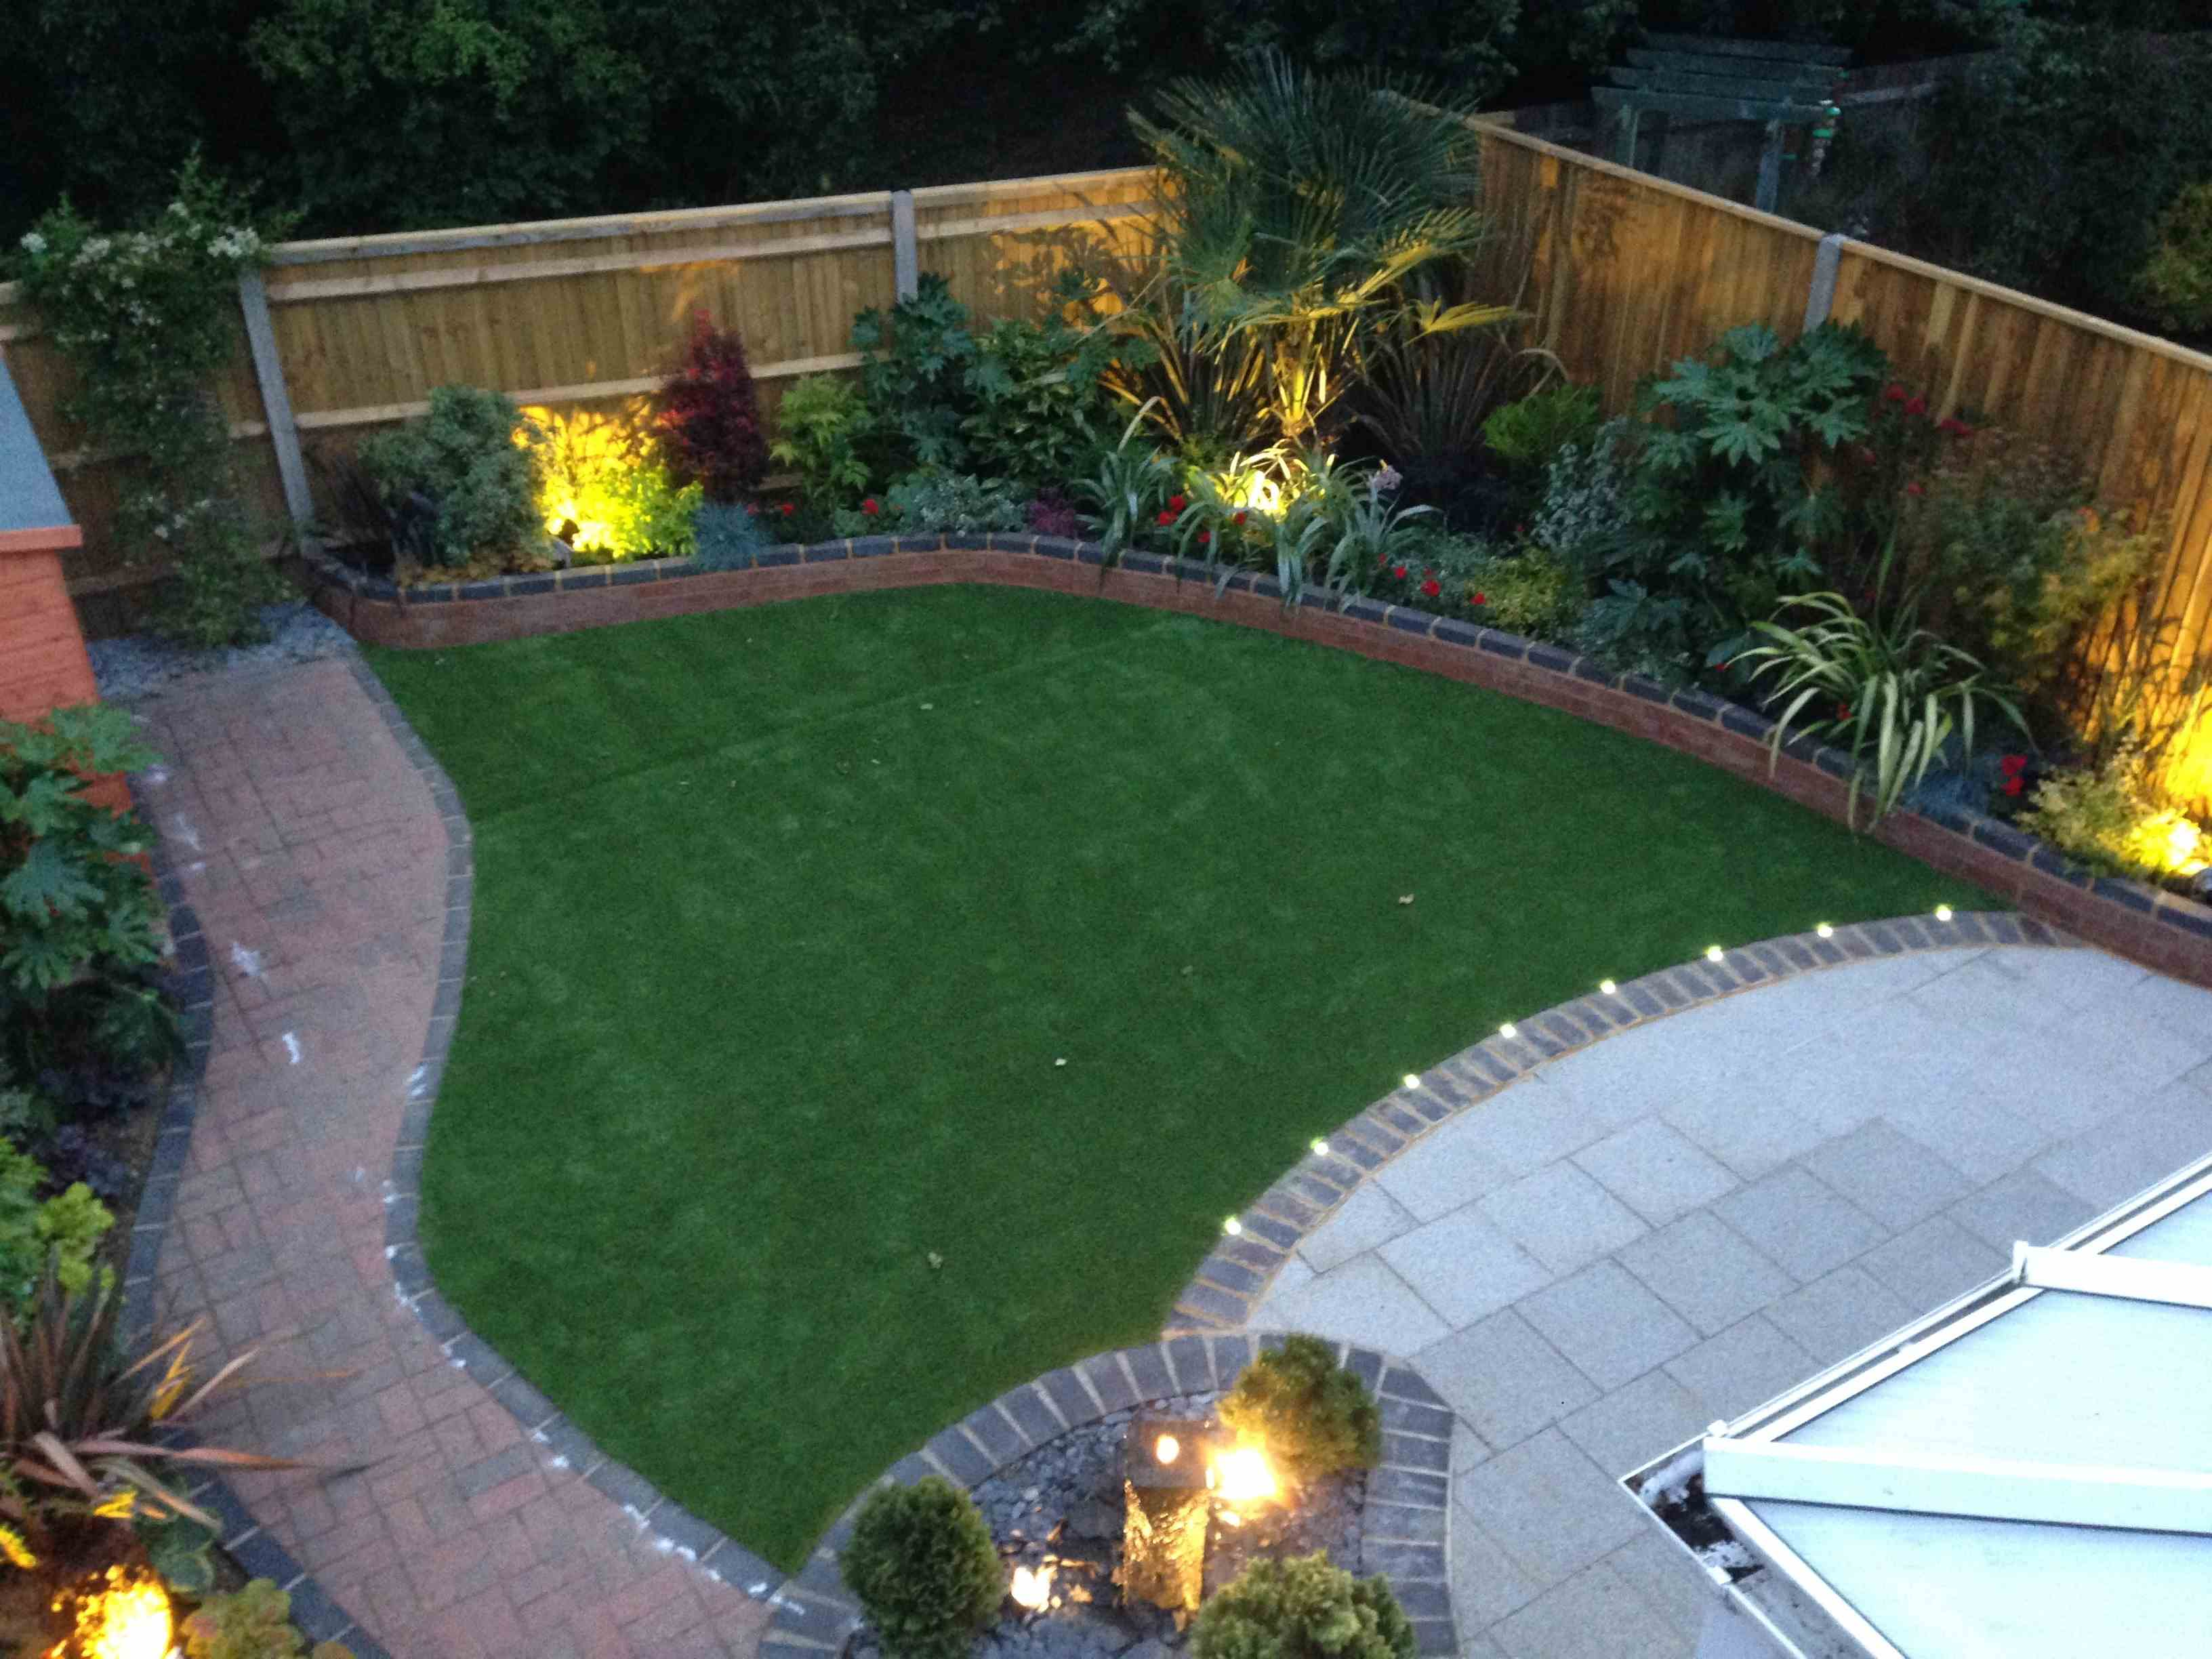 Garden Maintenance Landscape Gardener Patios Decking Fencing